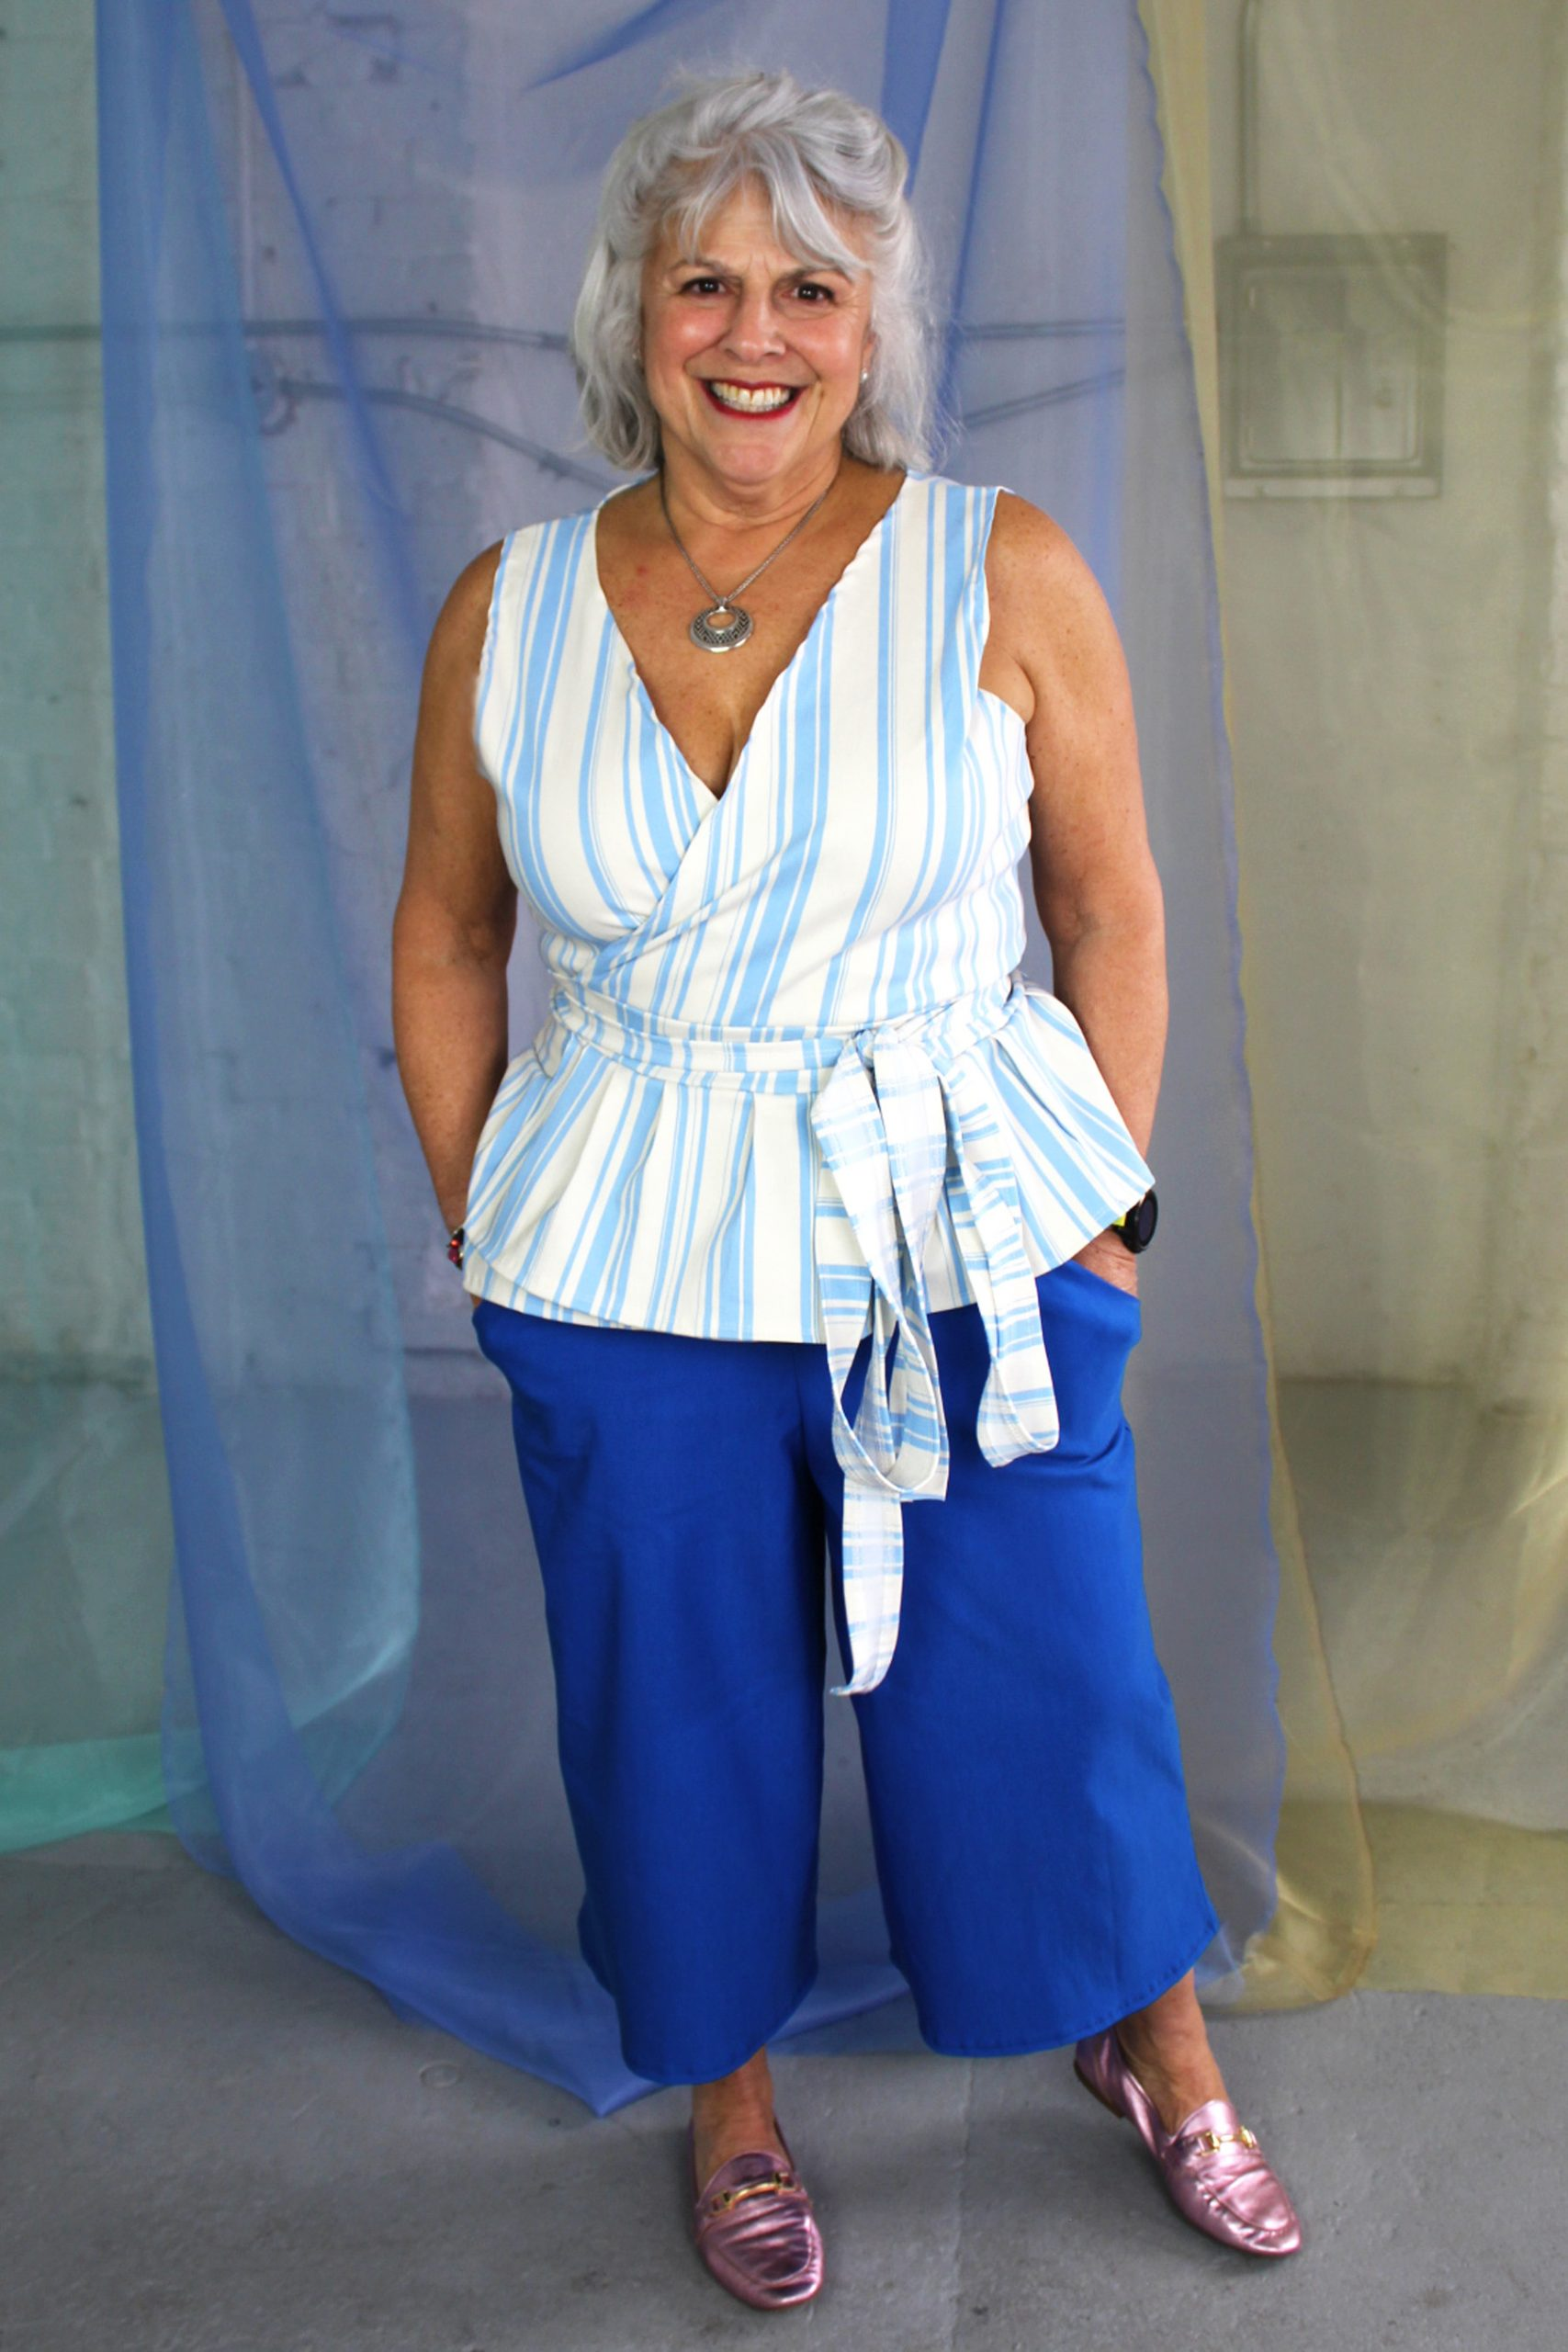 Inbetweenie size petite white mature model wearing blue capri pants with pockets and white and blue striped wrap top